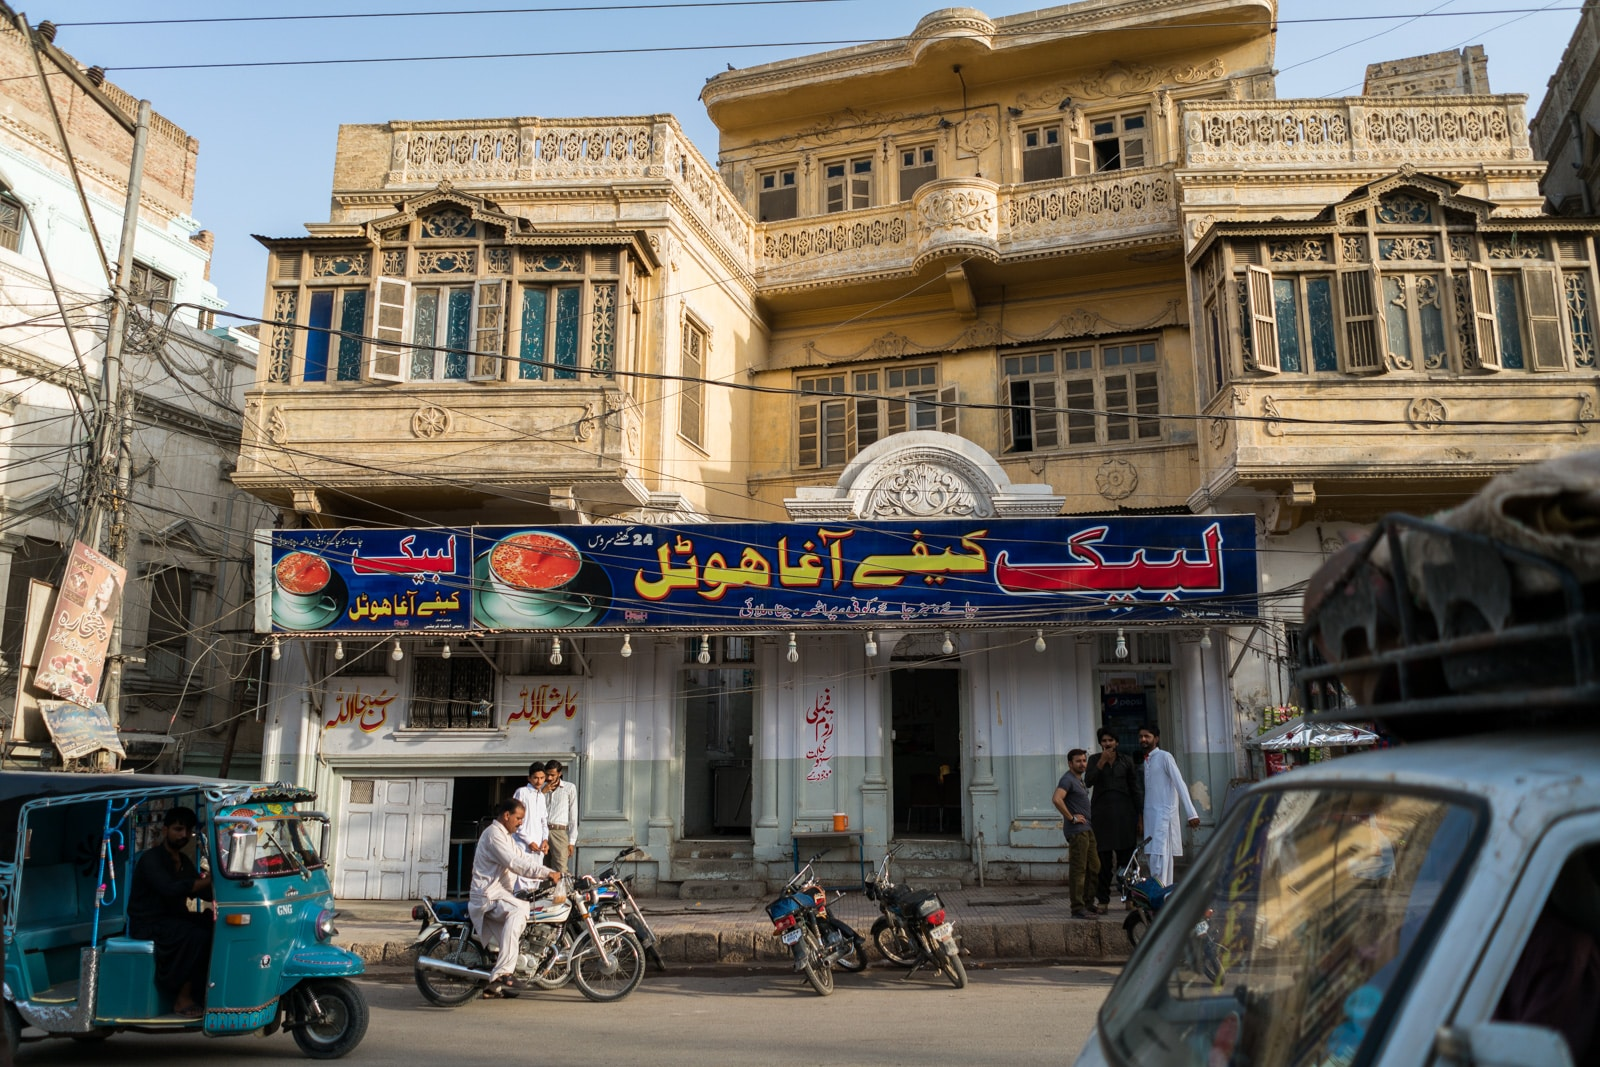 Sindh travel guide - The streets of Hyderabad, Pakistan - Lost With Purpose travel blog